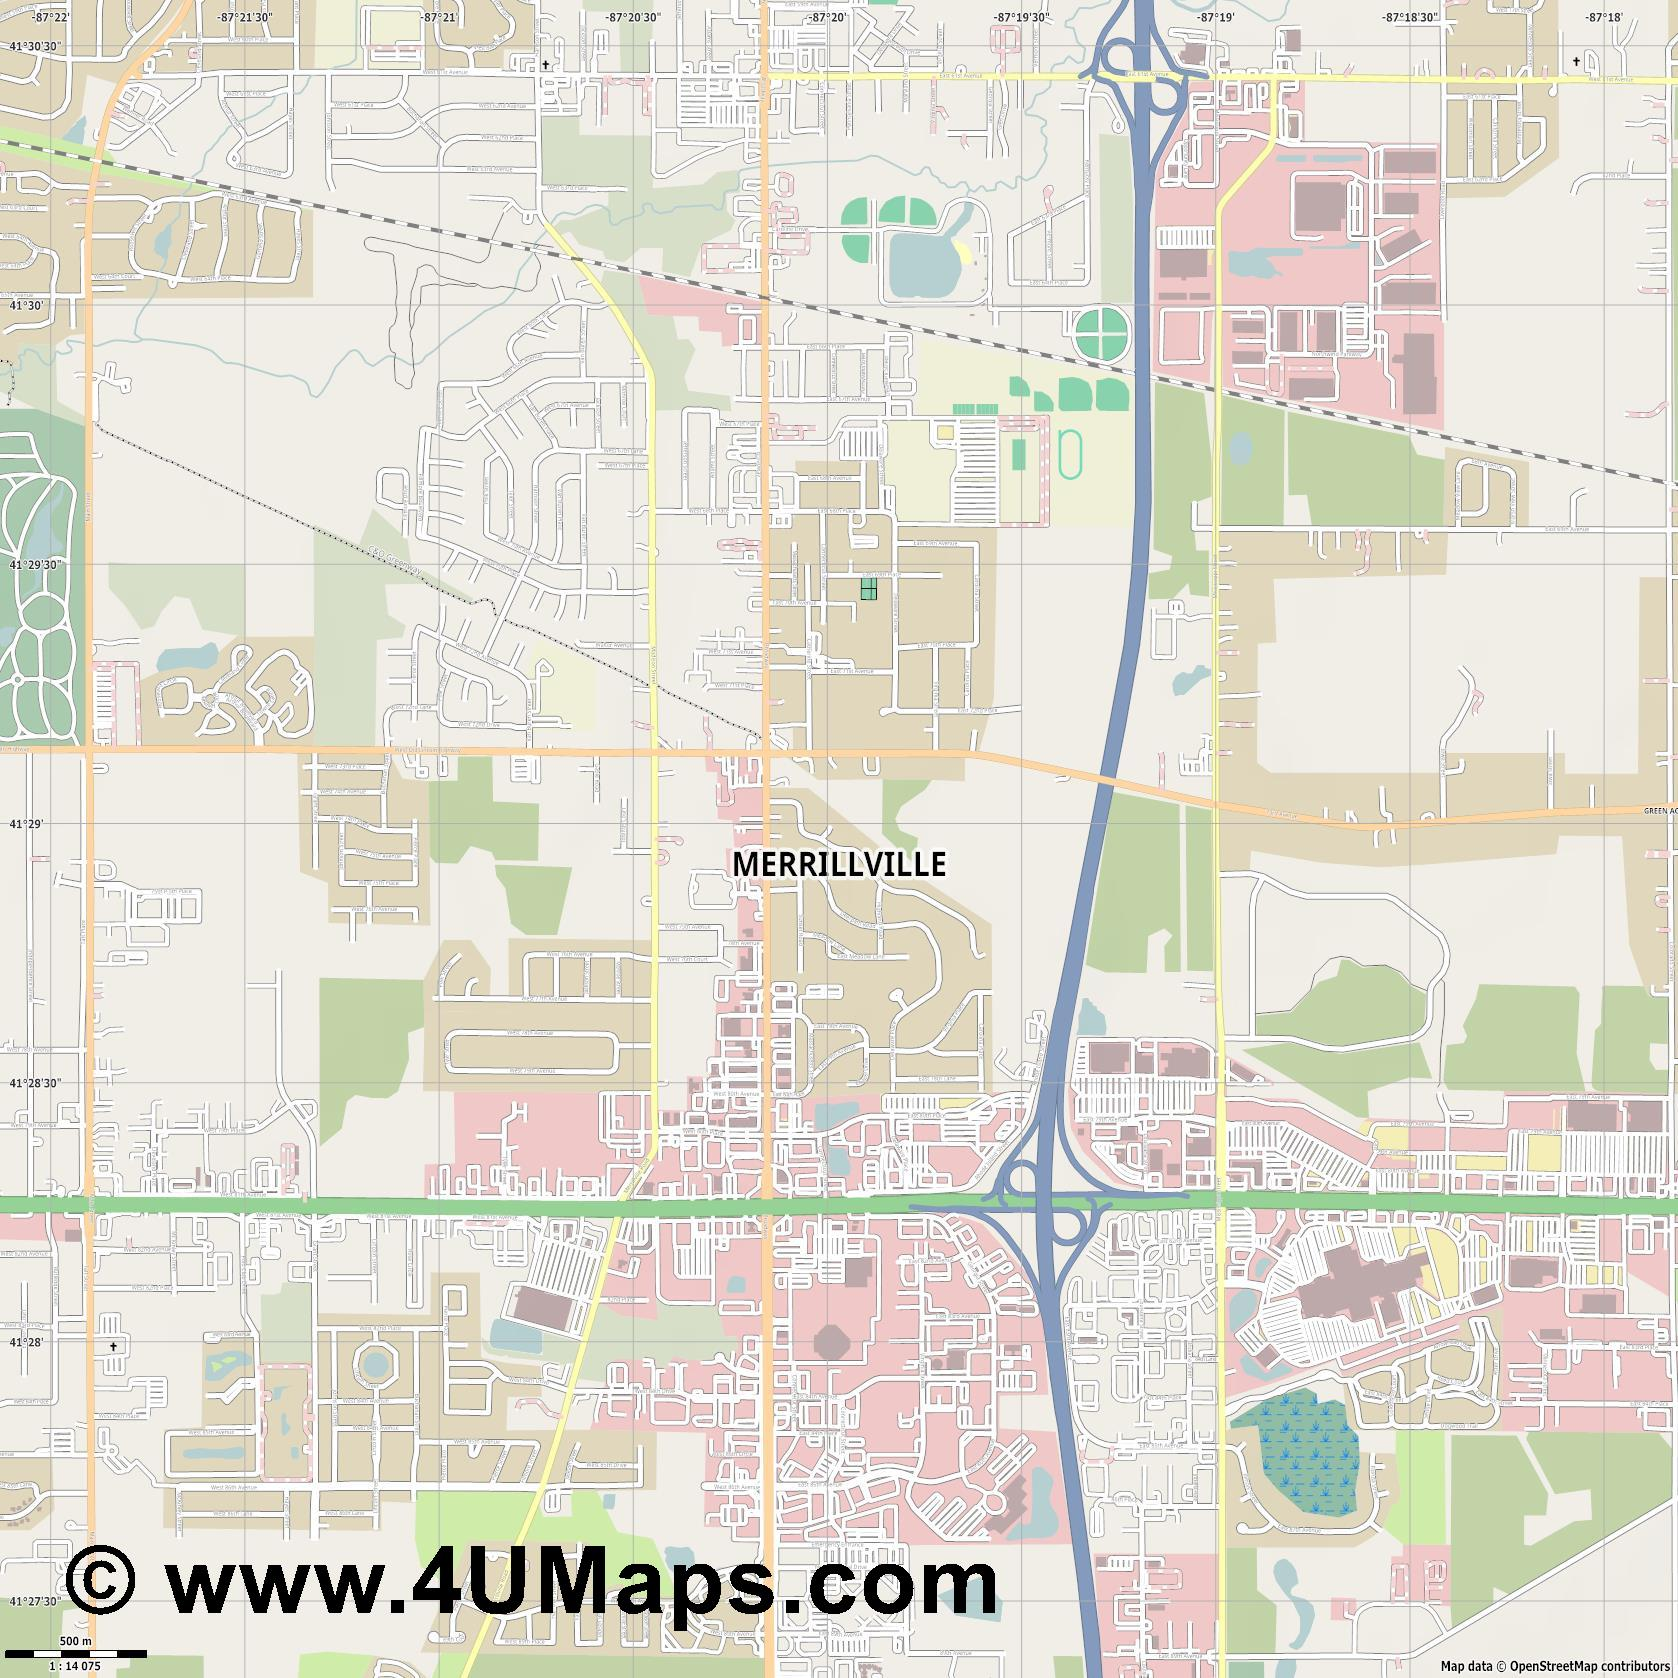 Merrillville  jpg ultra high detail preview vector city map